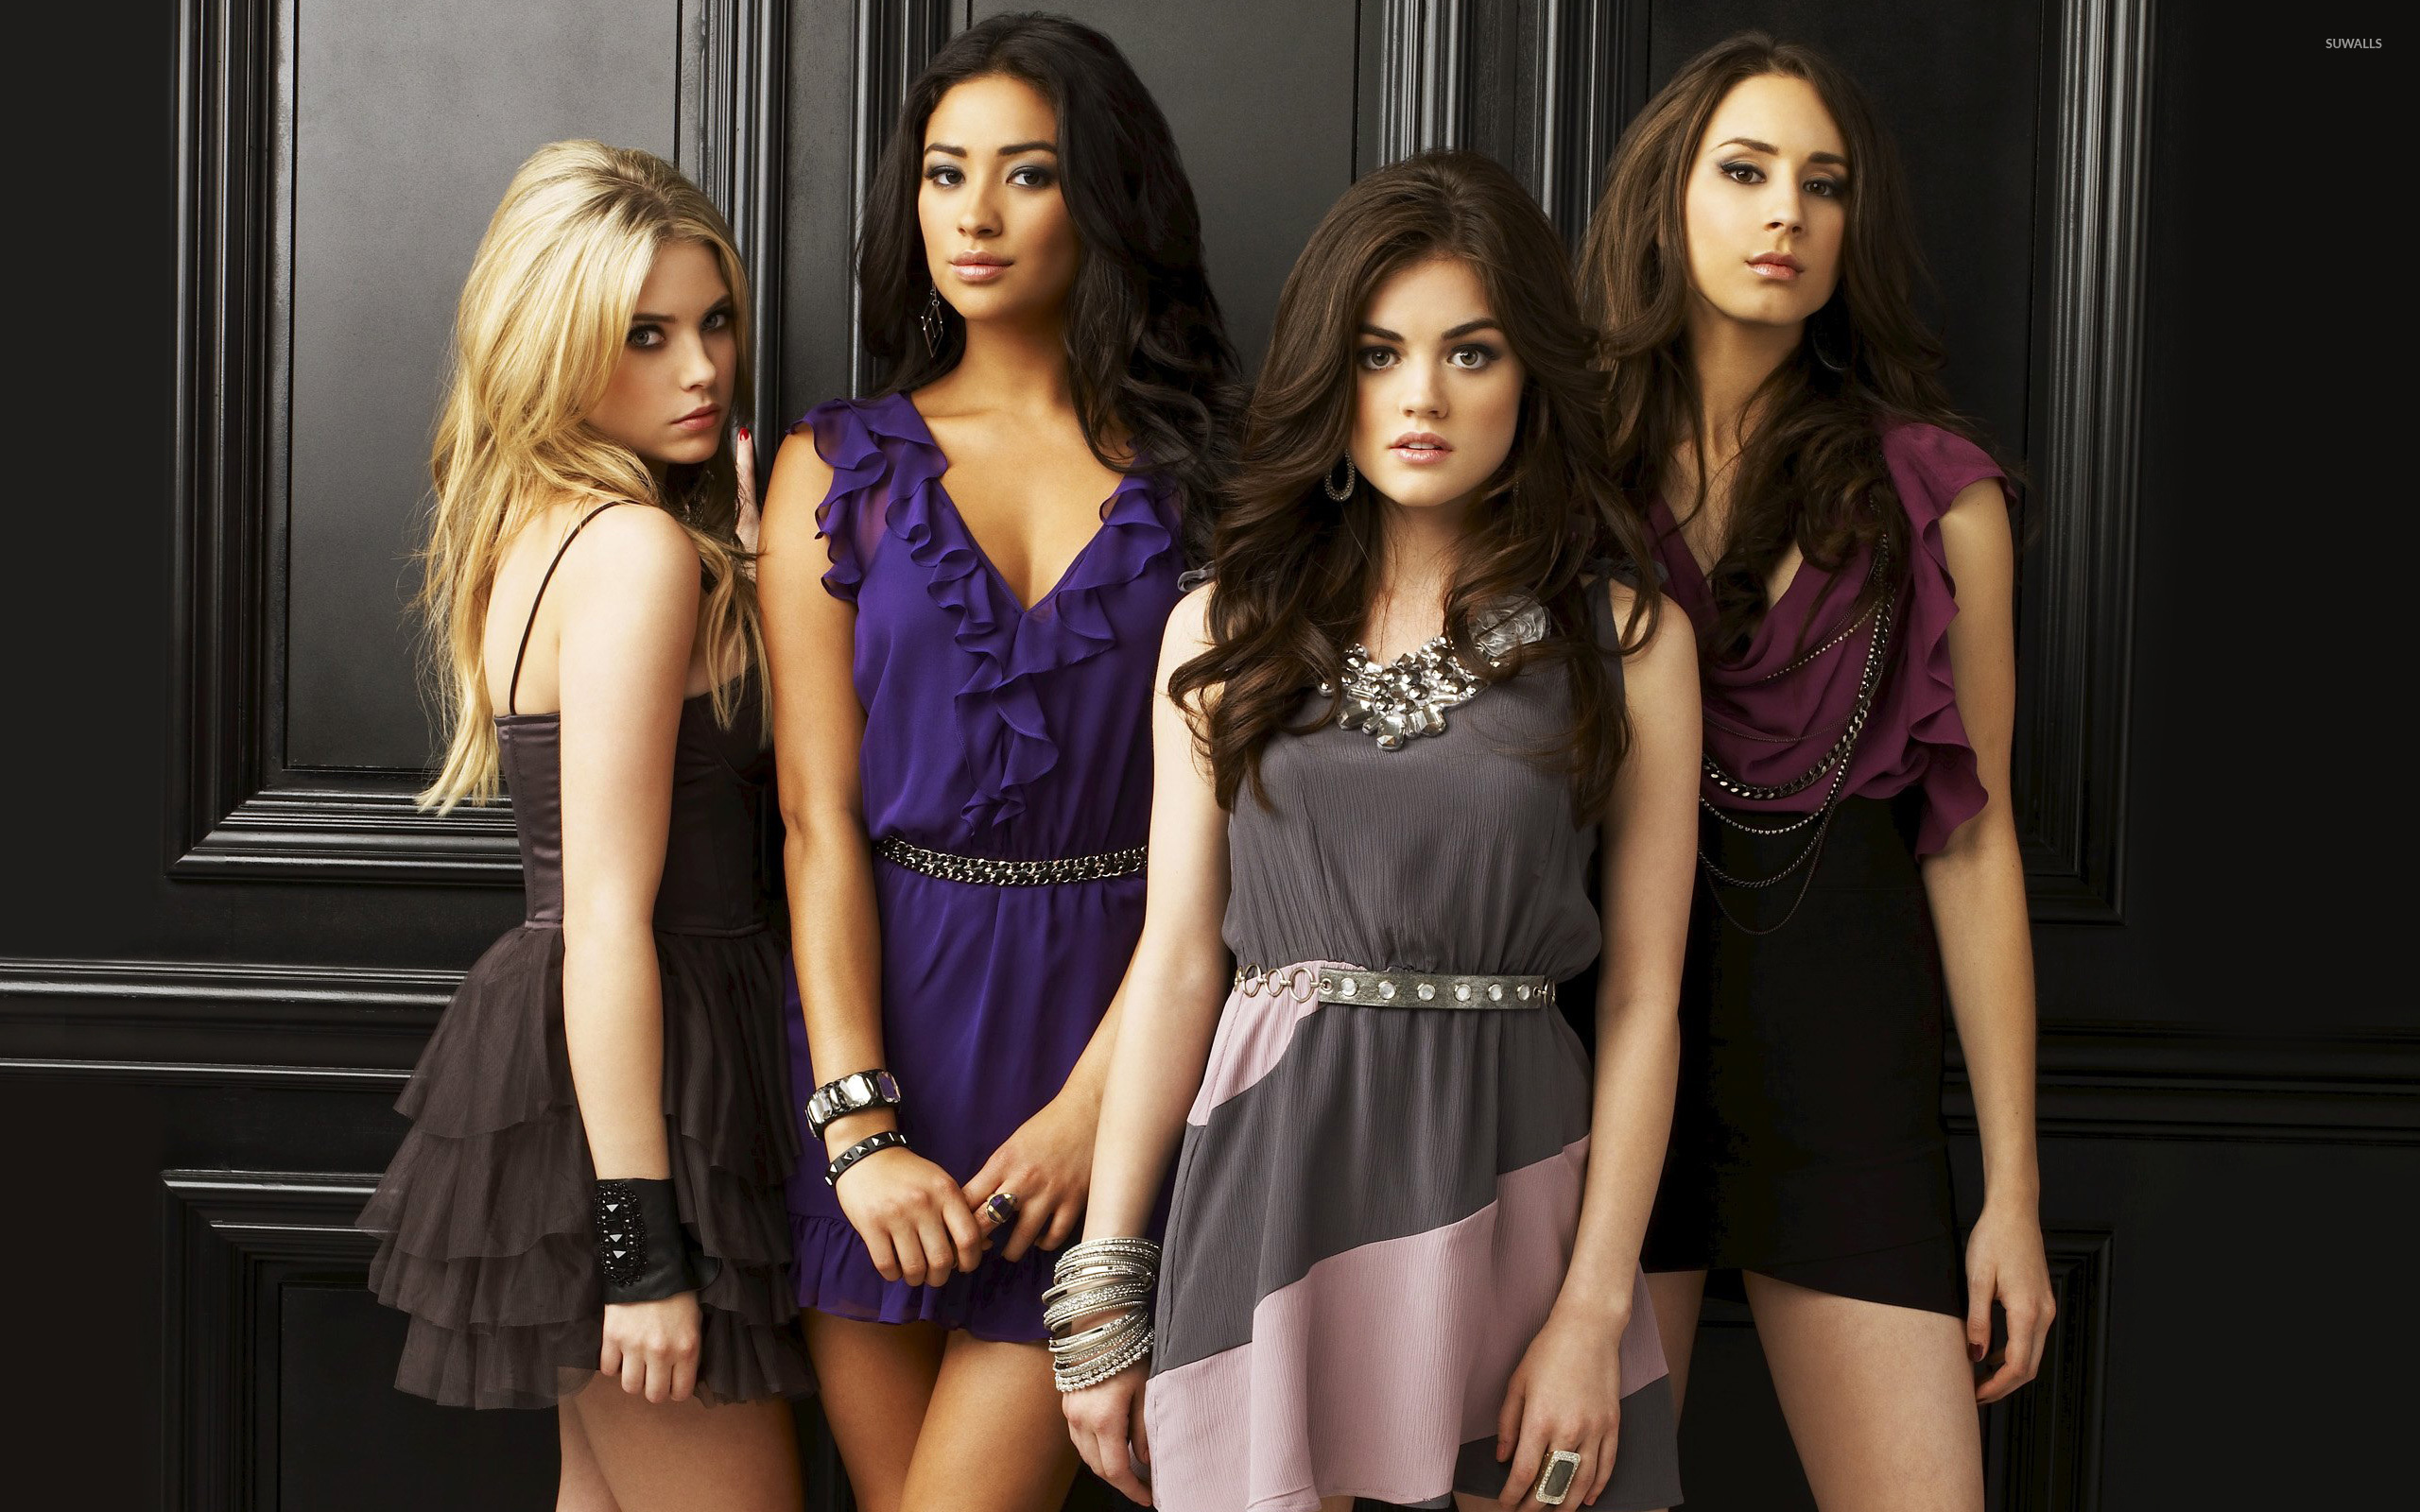 pretty little liars [2] wallpaper - tv show wallpapers - #8363